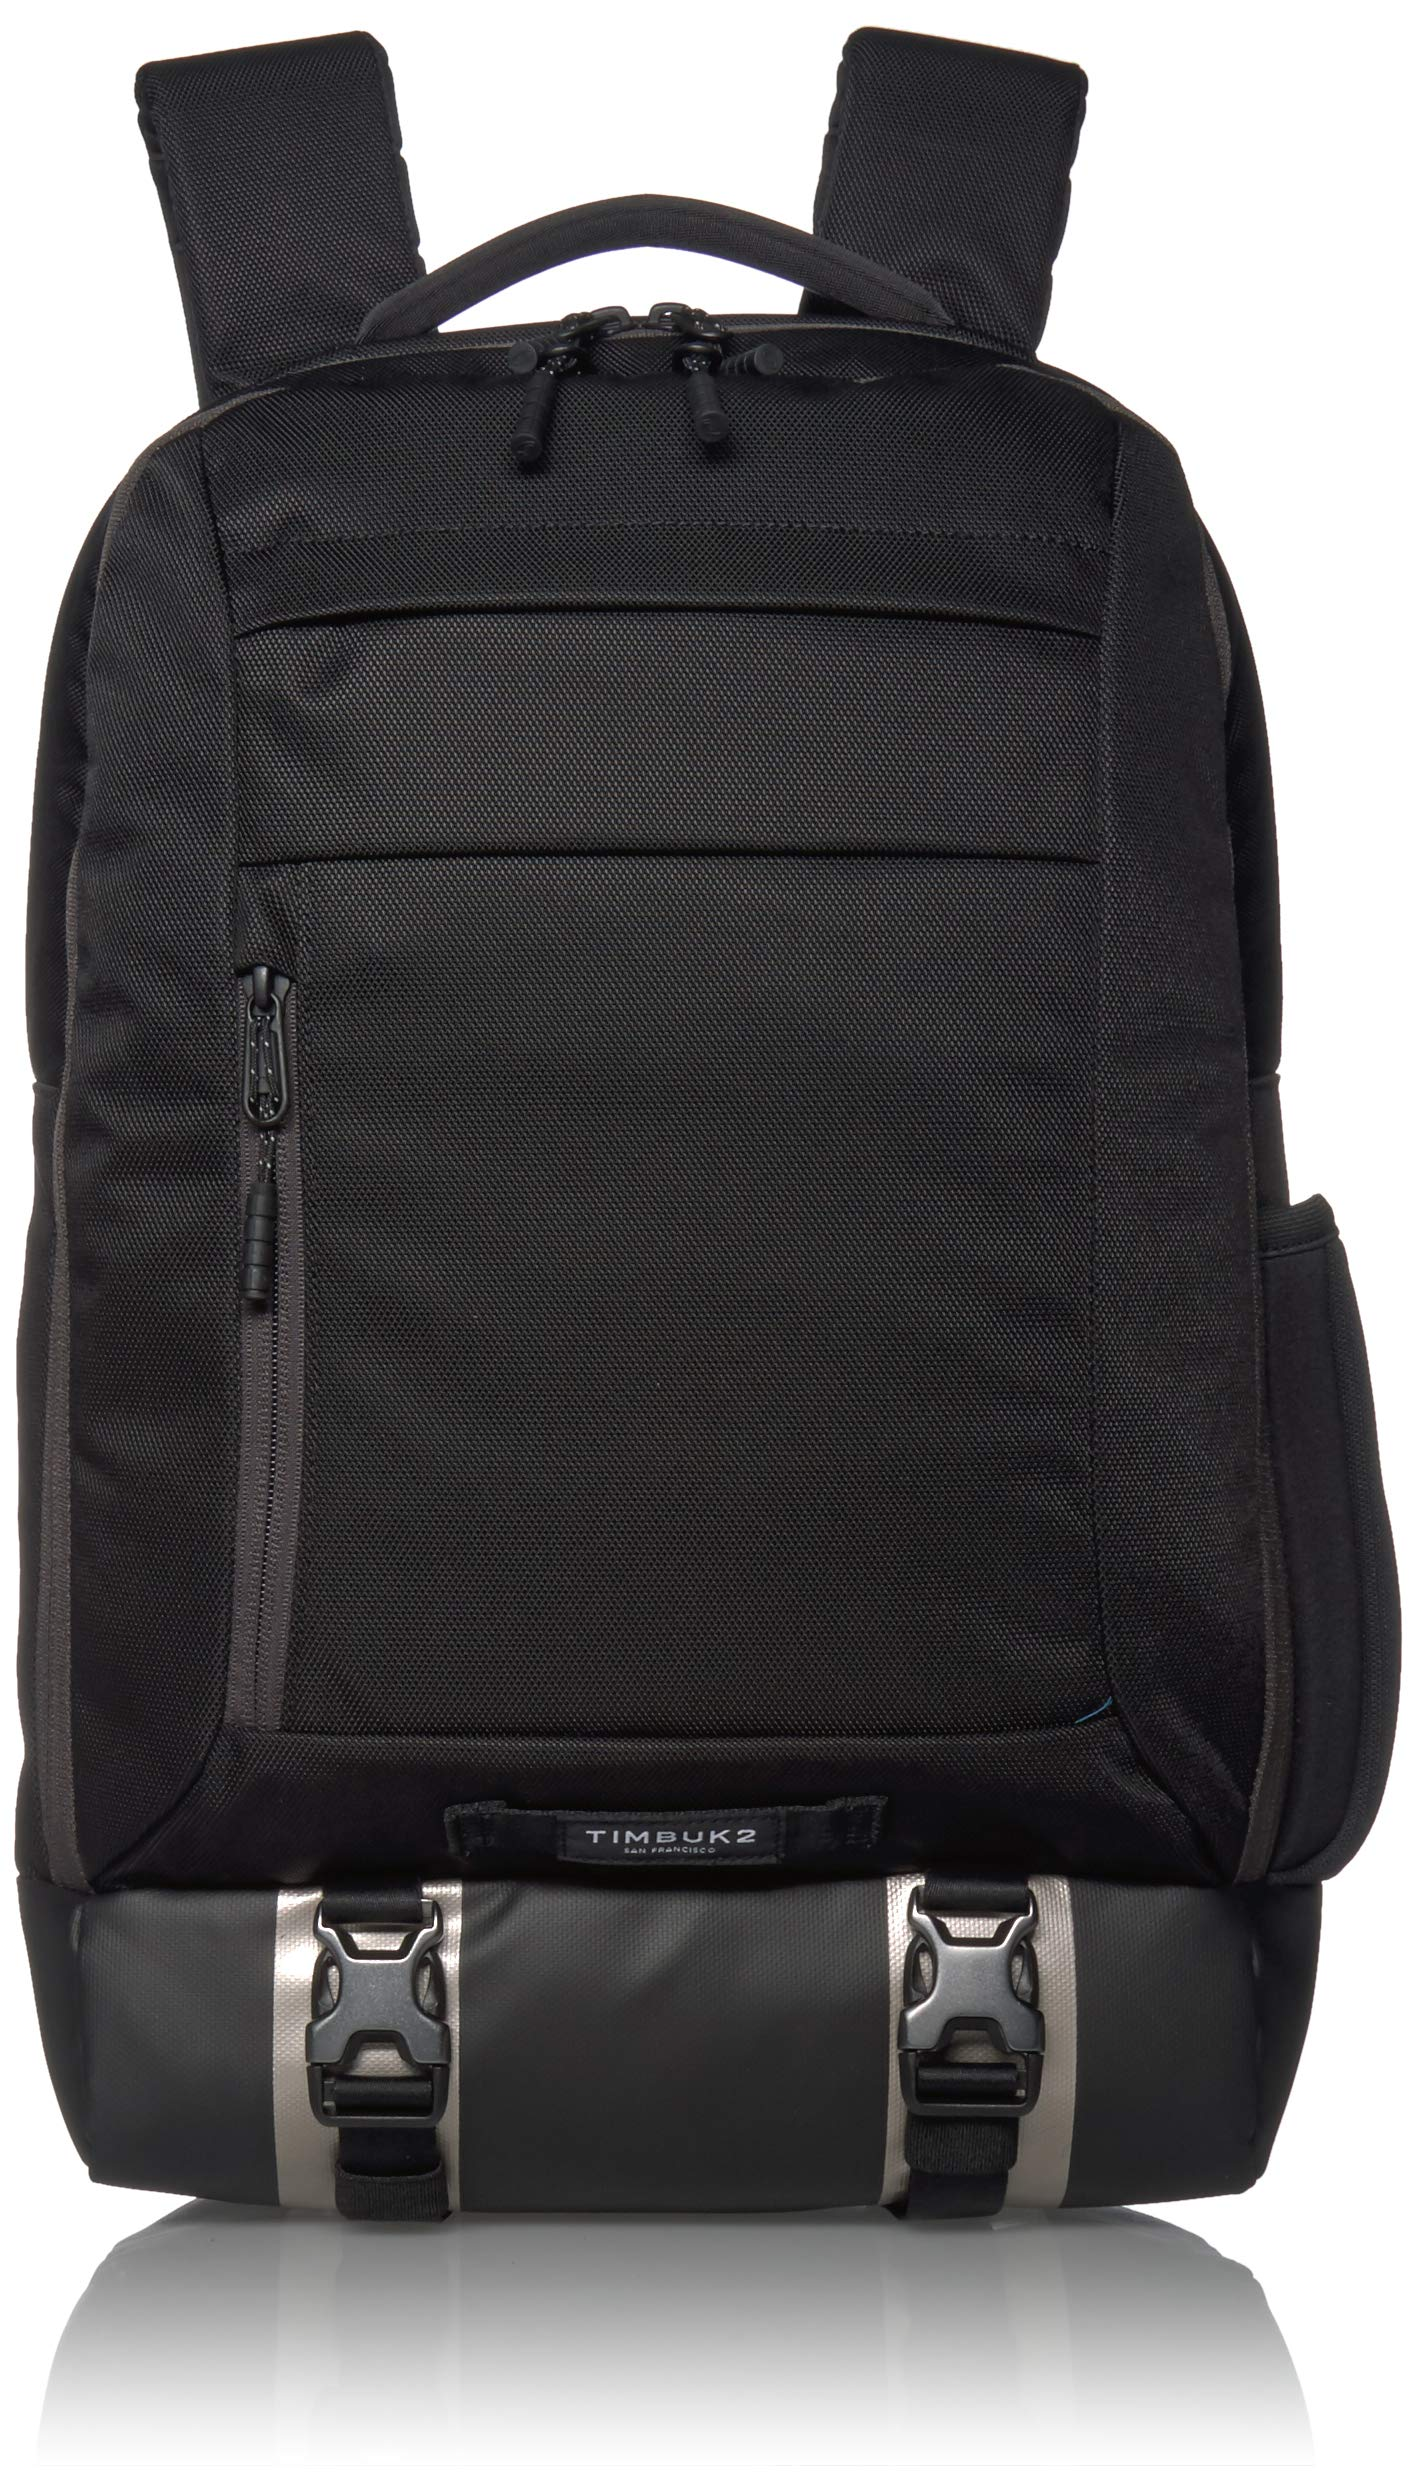 Timbuk2 Laptop Backpack, Black Deluxe, One Size by Timbuk2